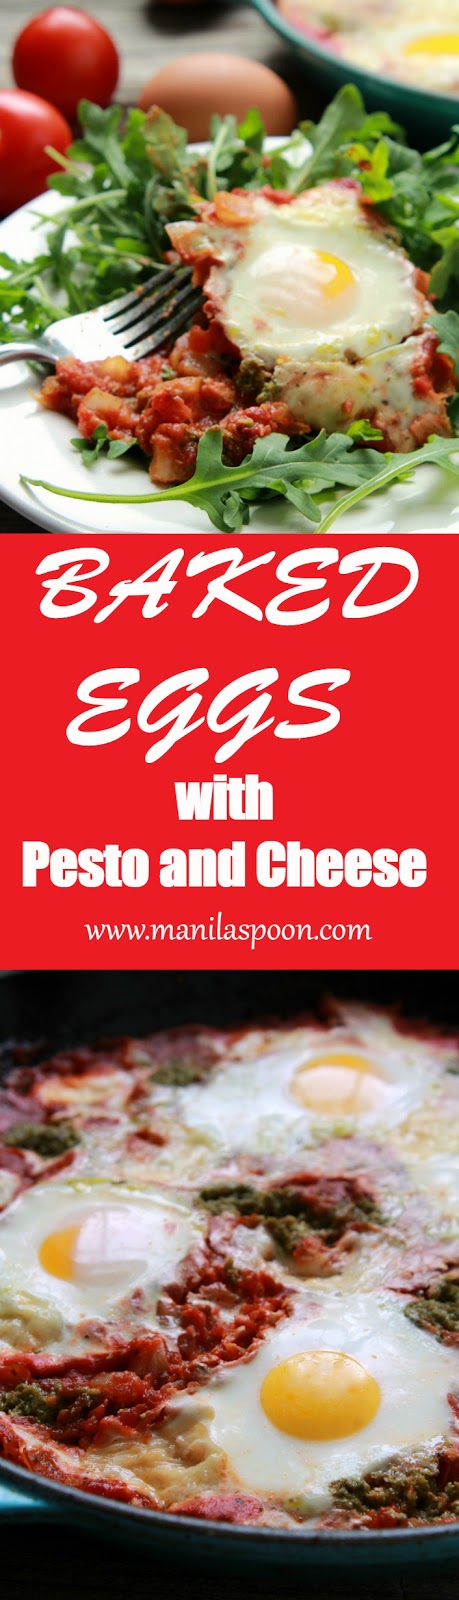 Delicious and easy baked eggs with pesto and cheese for those mornings when you fancy a hot and savory breakfast. Gluten-free and low-carb.